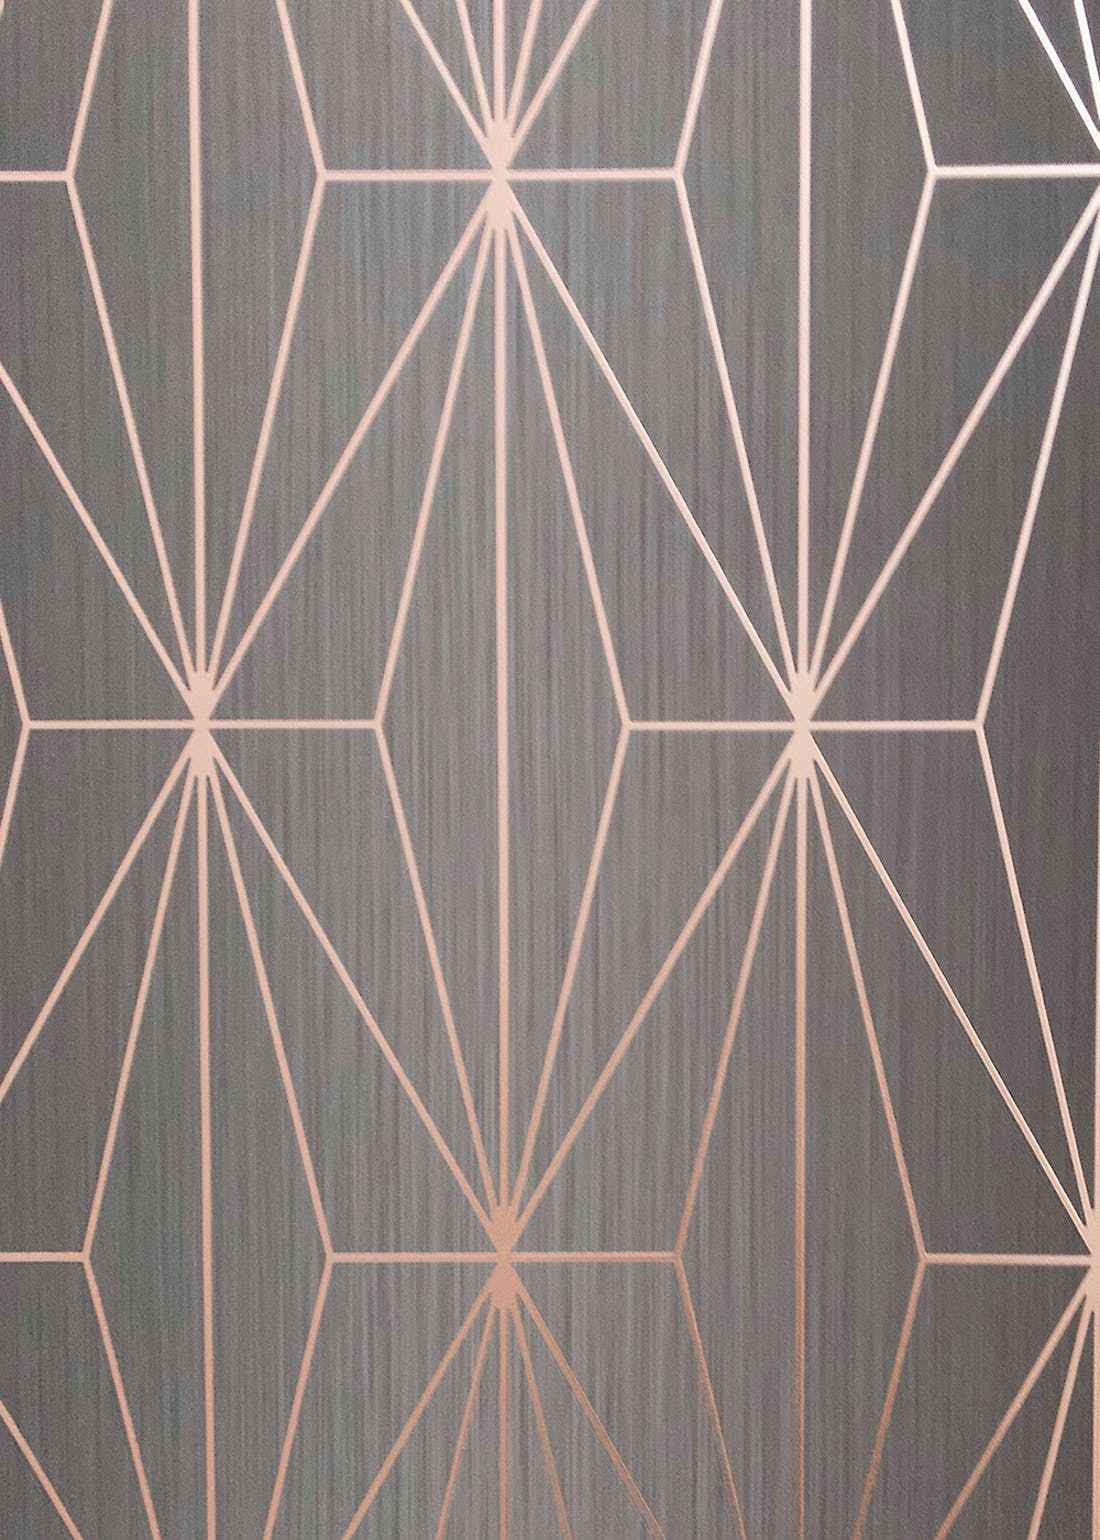 Muriva Couture Kayla Charcoal Rose Foil Wallpaper (10.05m x 53cm)